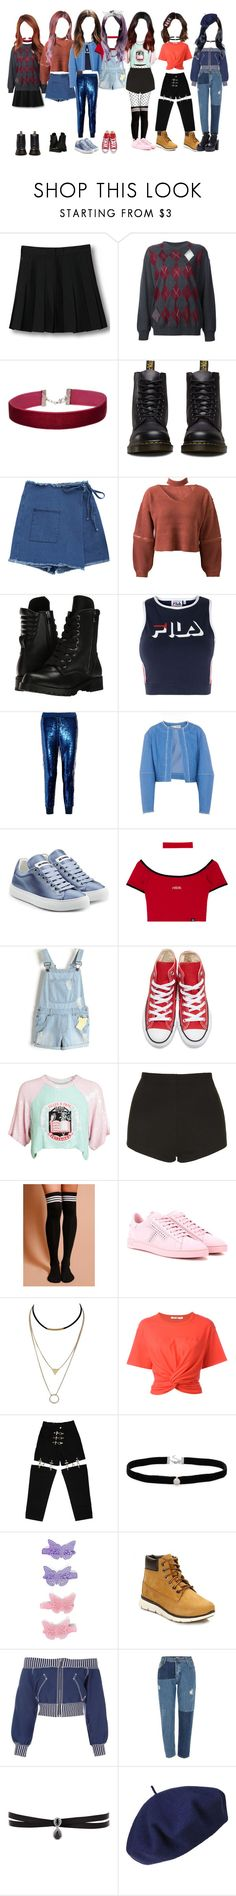 """""""[MV] I'll Be There"""" by princessmax ❤ liked on Polyvore featuring WithChic, Alexander Wang, Miss Selfridge, Dr. Martens, Capezio, Fila, Ashish, FLOW the Label, Jil Sander and Converse"""